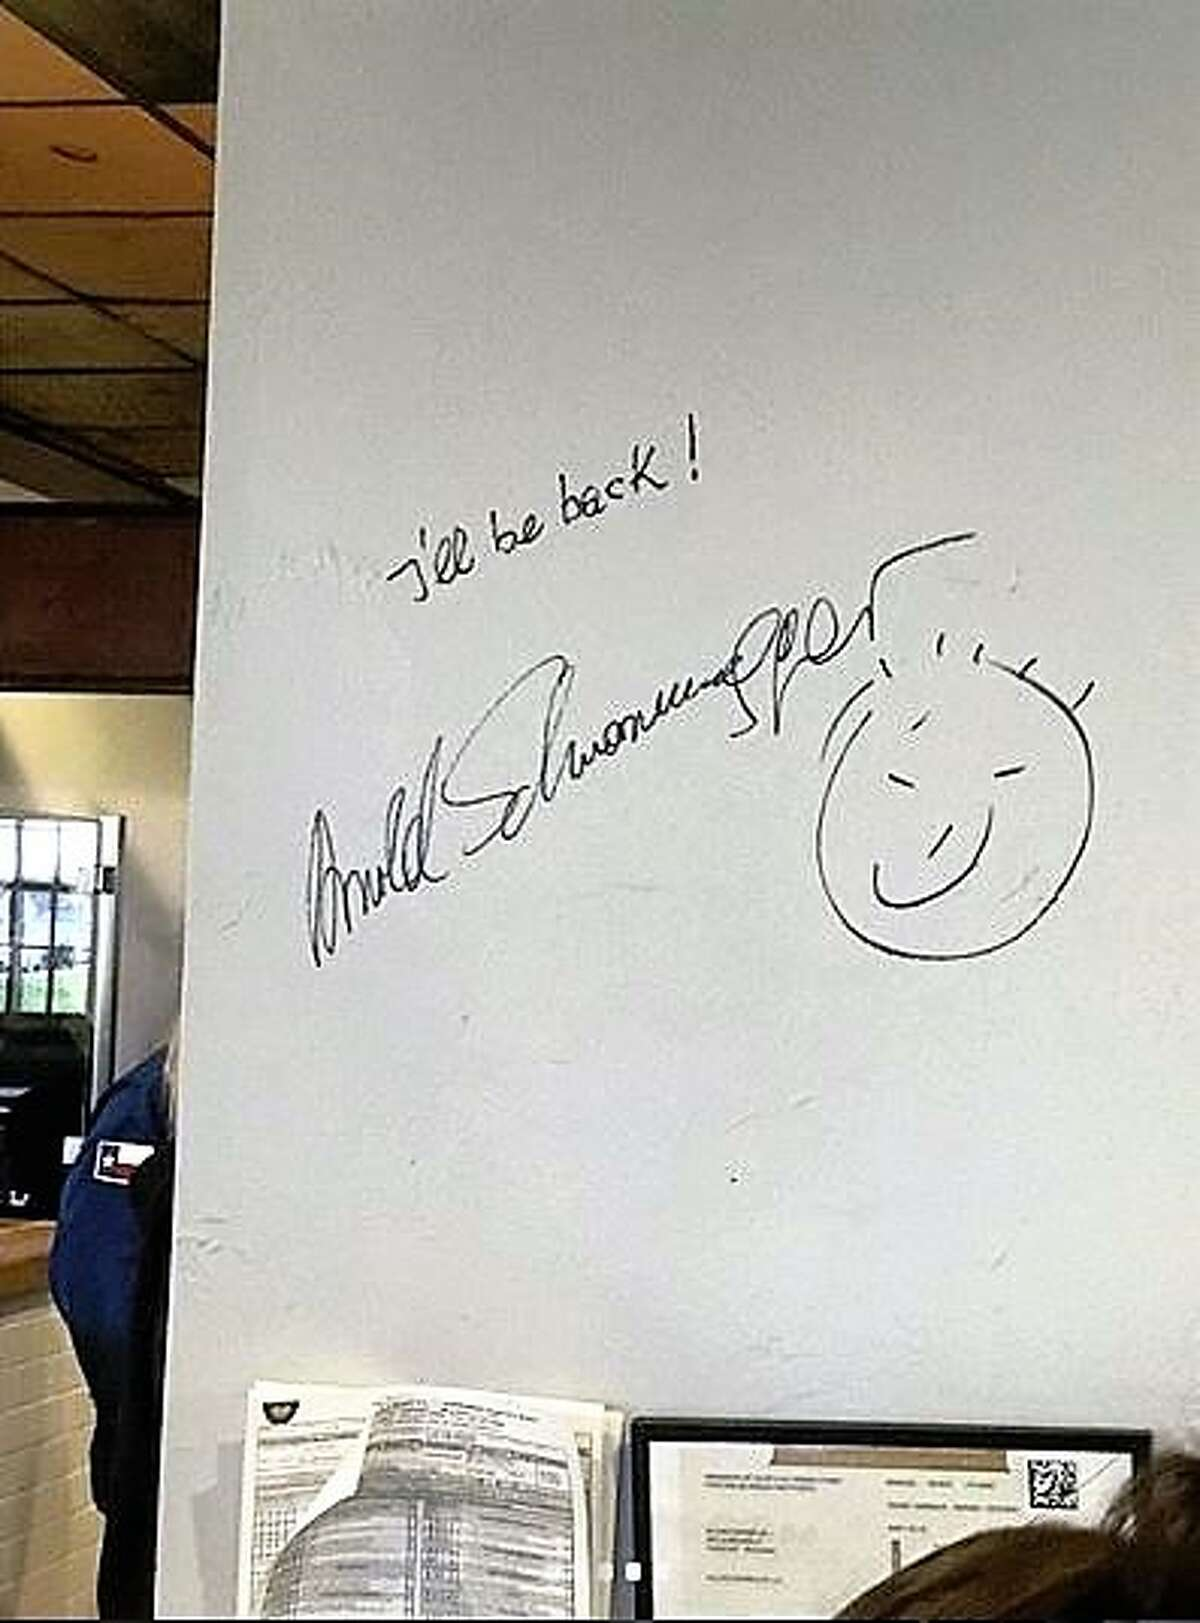 Schwarzenegger signed his name on one of the interior walls at Killen's Barbecue.